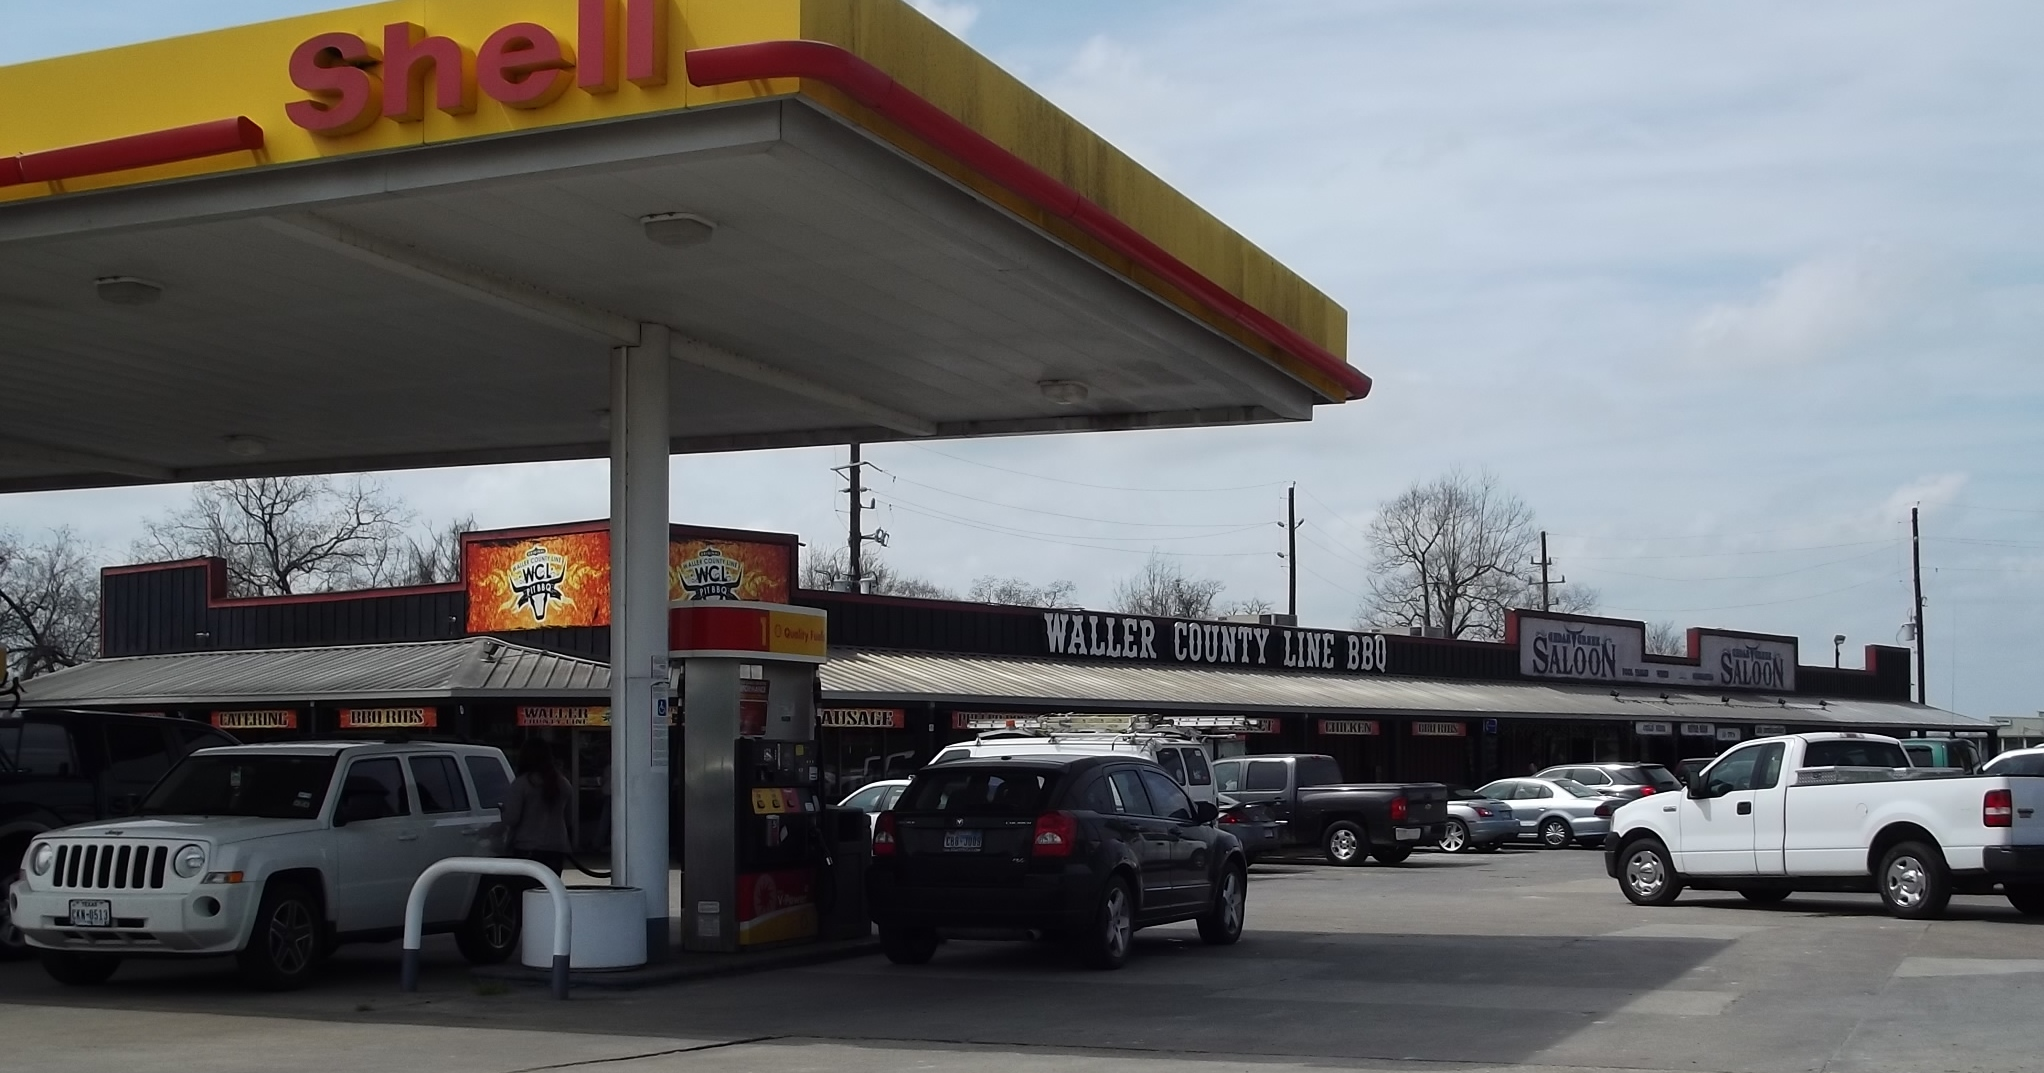 Waller County Line BBG & Shell Station